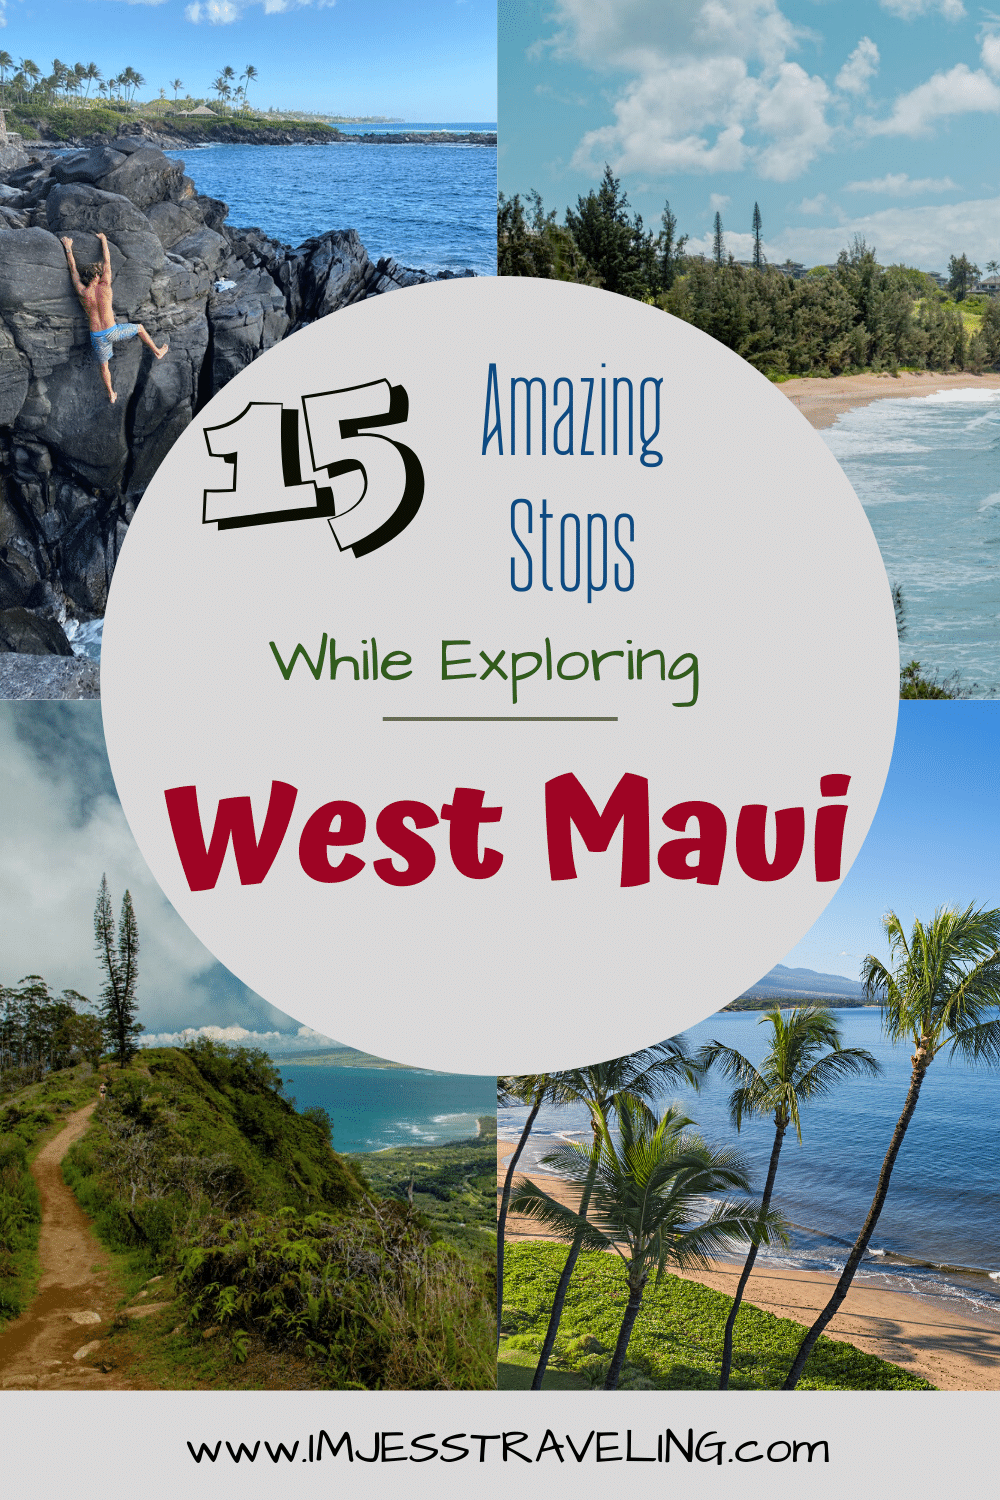 The Best Stops While Exploring West Maui